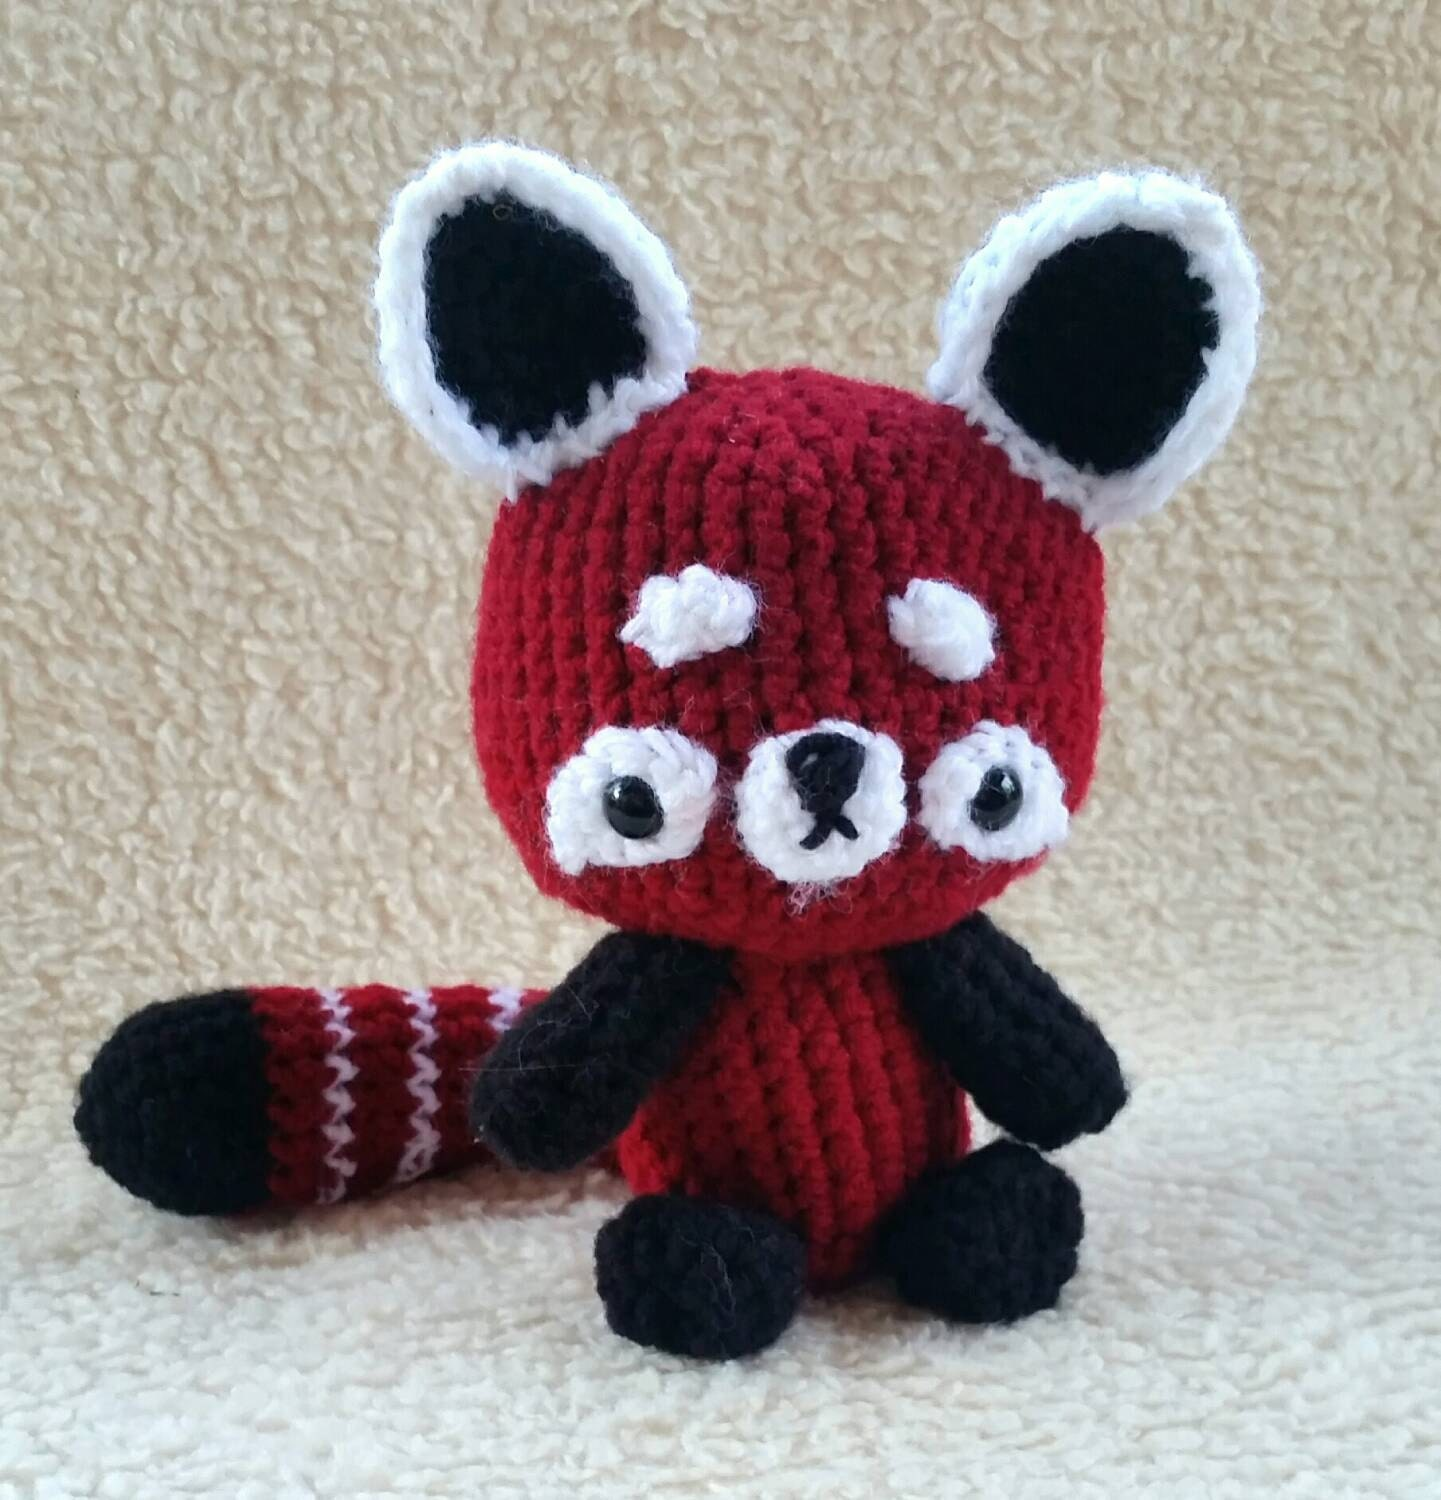 Amigurumi Red Panda : Red Panda Amigurumi Plush Cute Crochet Baby Animal Doll